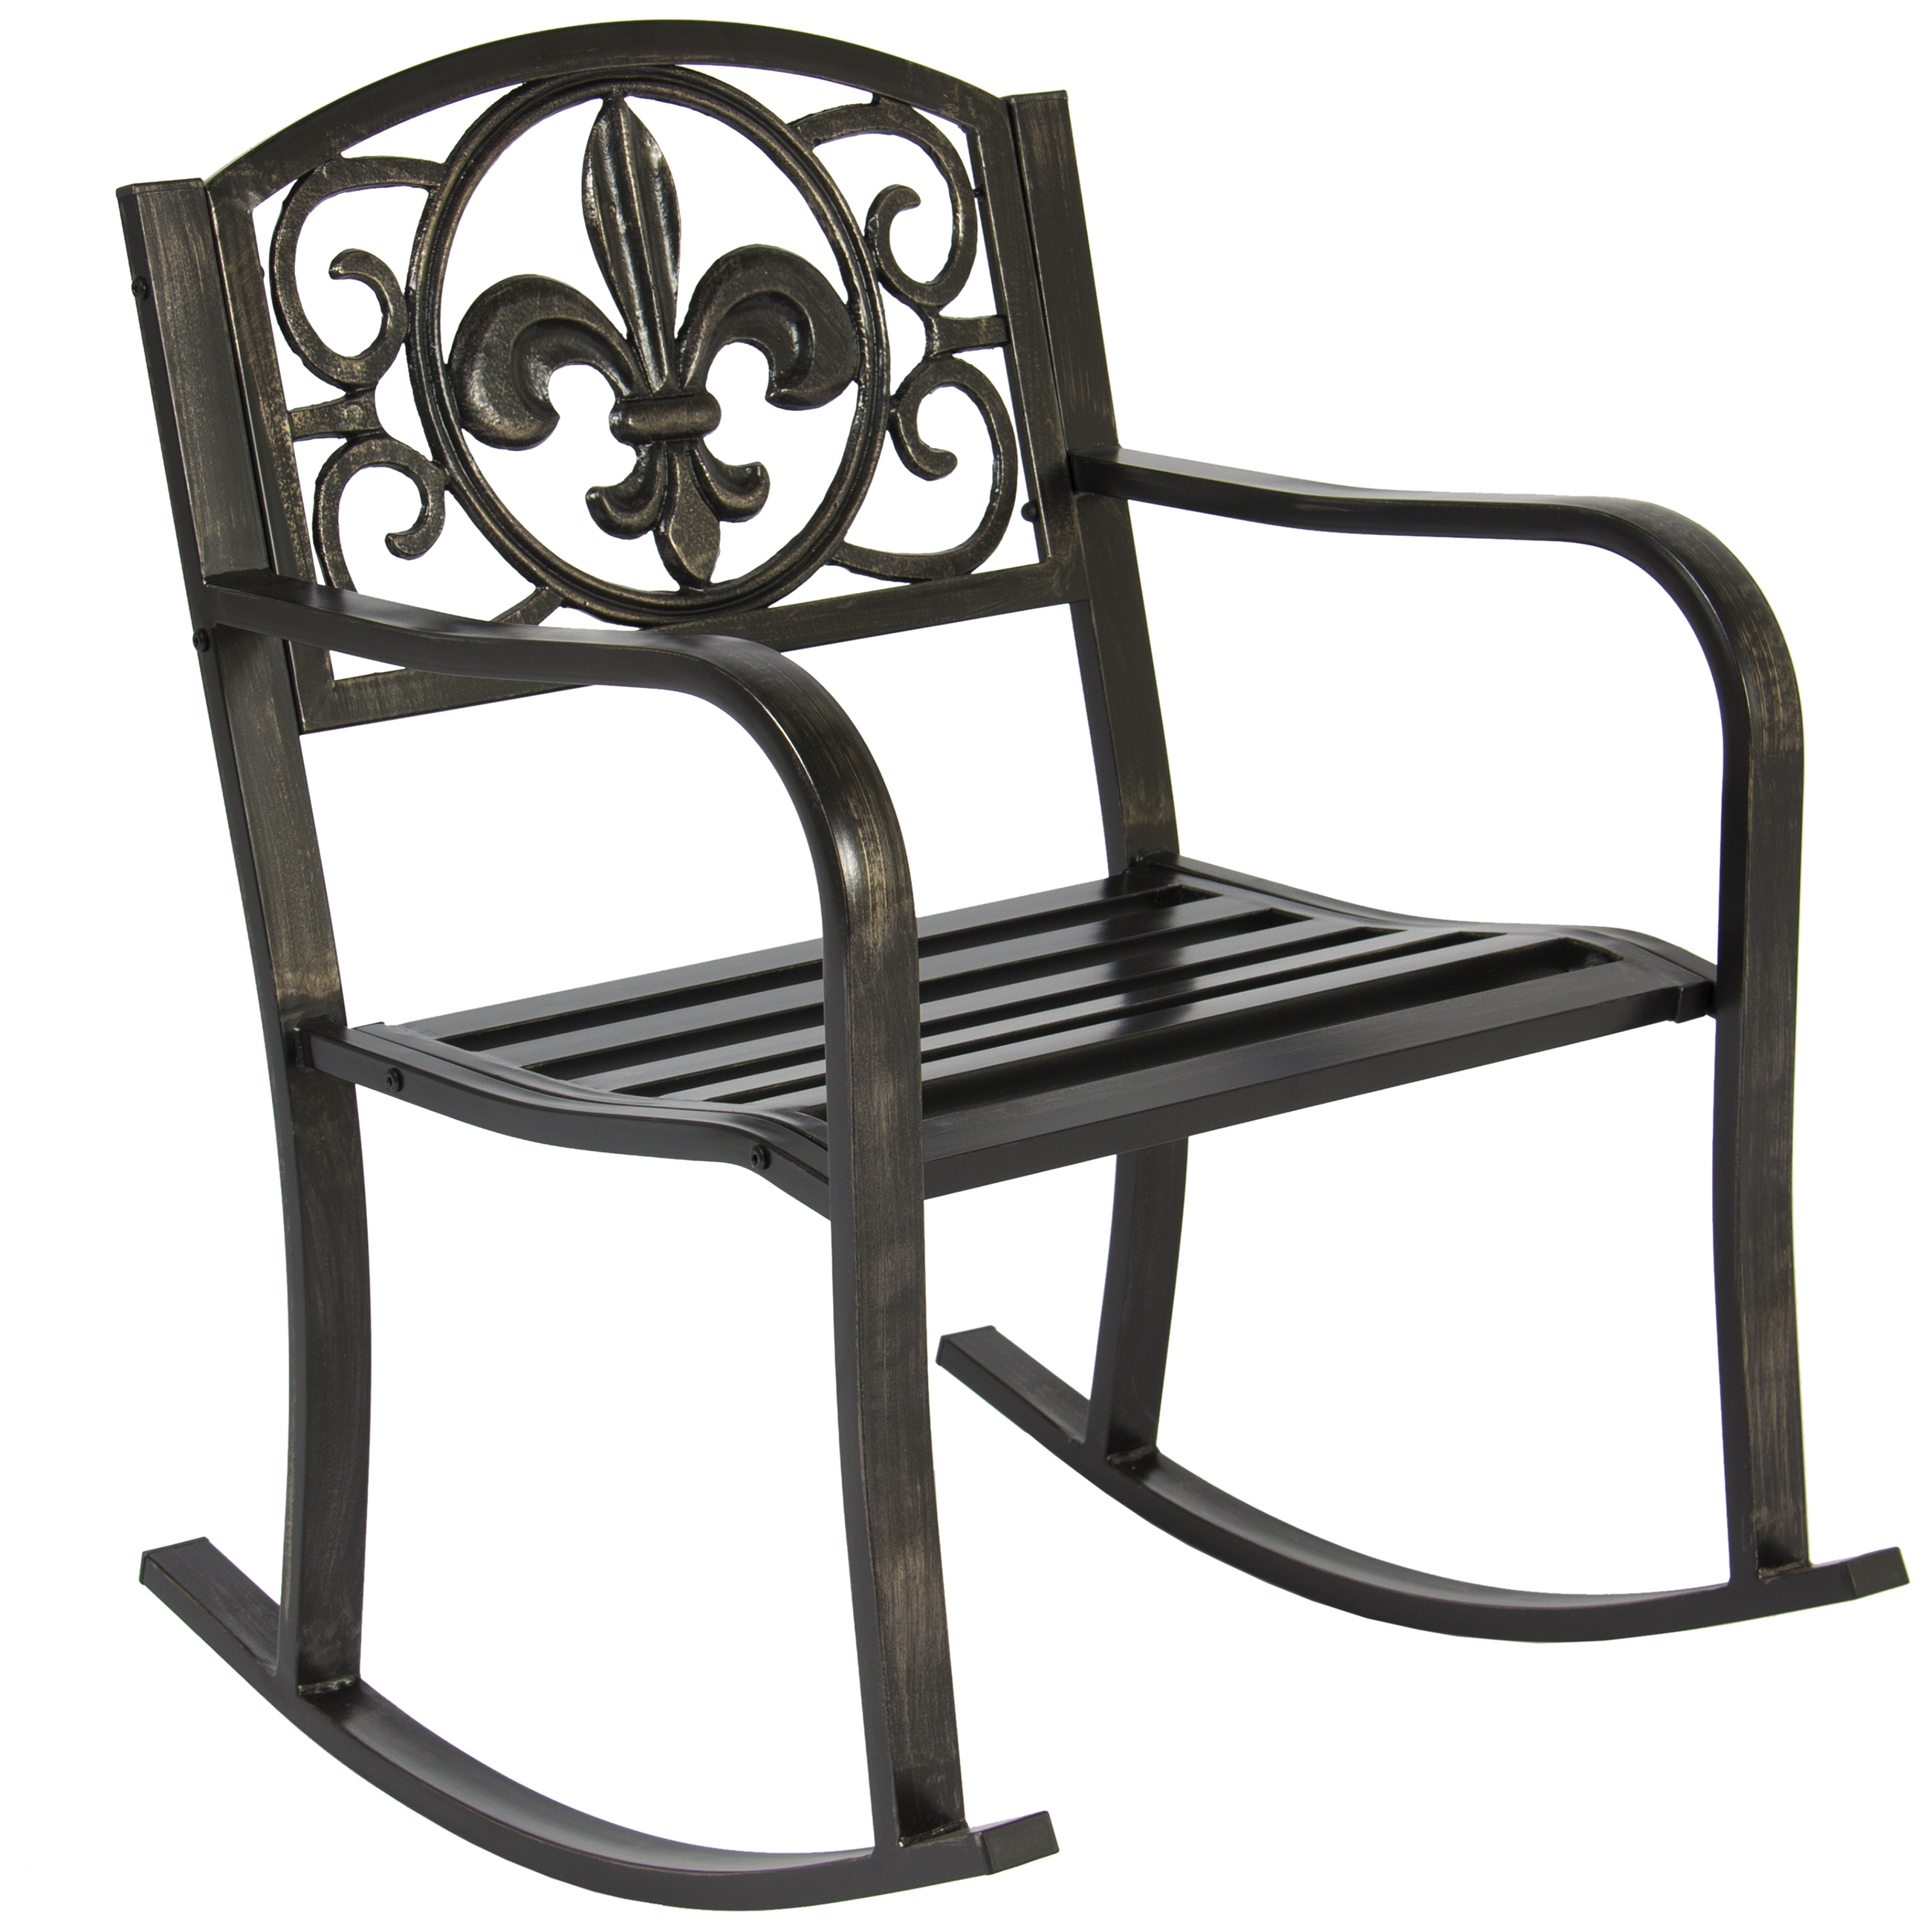 Best Choice Products Metal Rocking Chair Seat For Patio, Porch, Deck Throughout Inexpensive Patio Rocking Chairs (View 1 of 15)